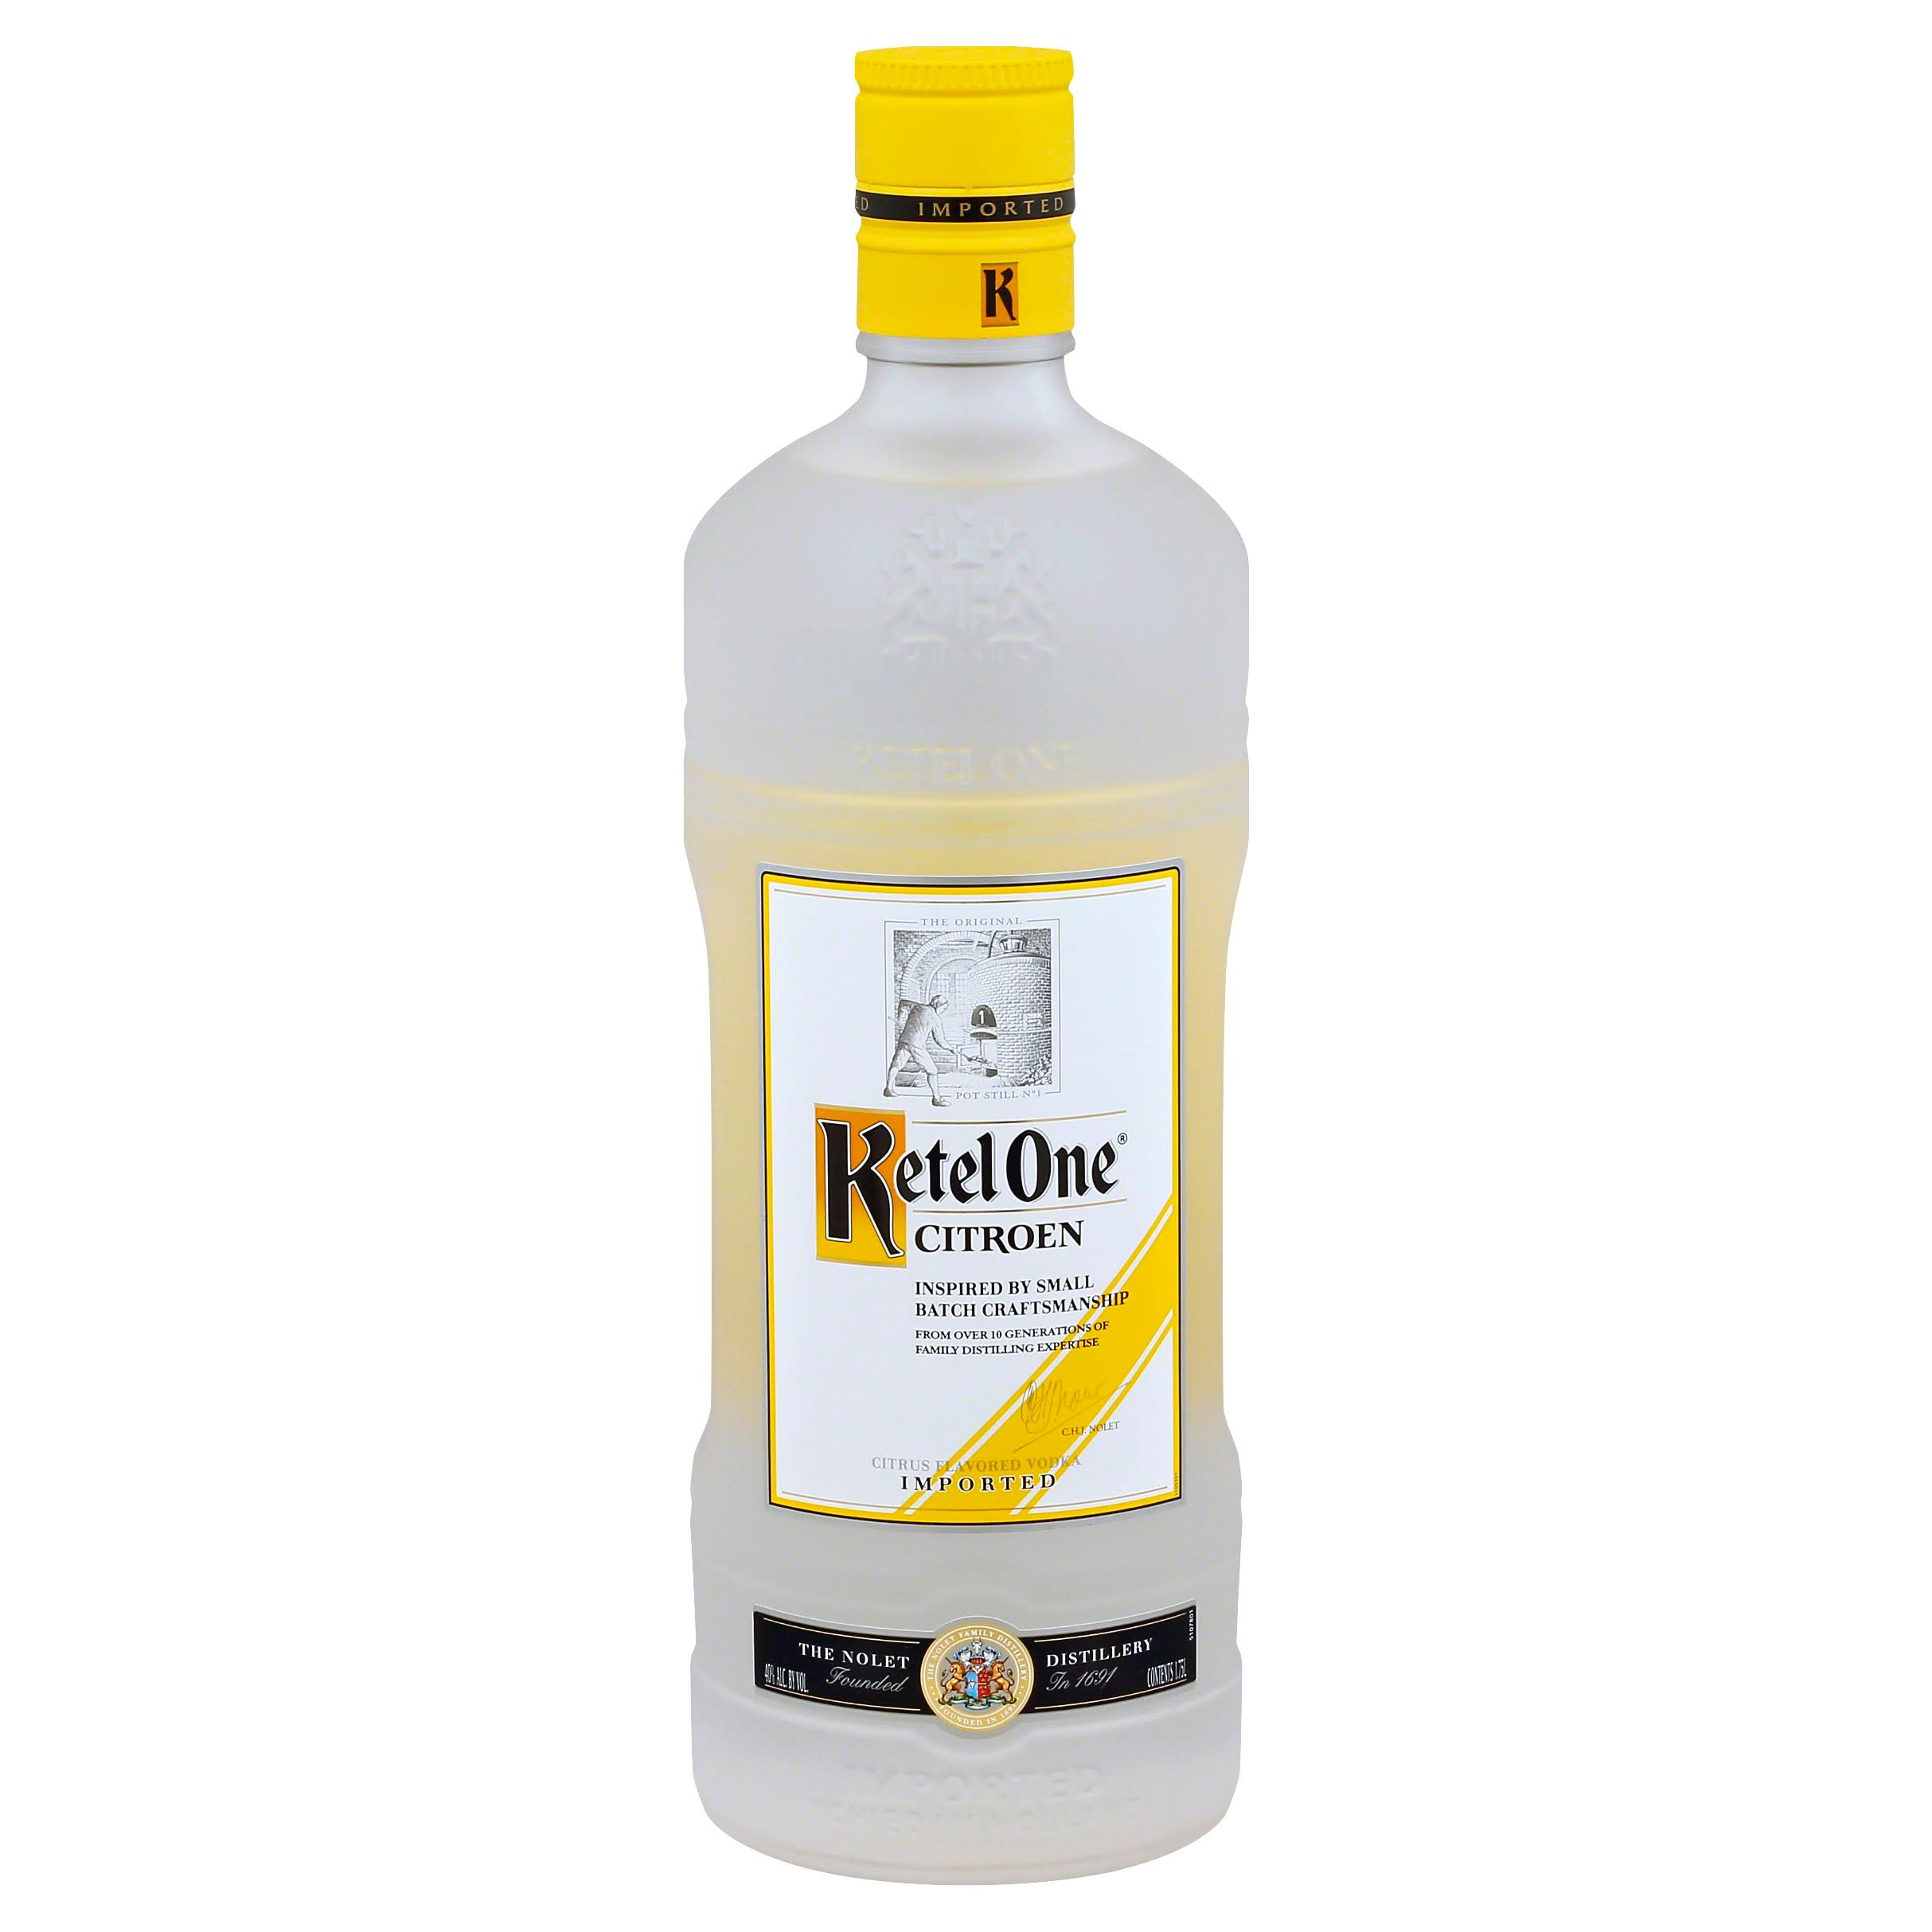 Ketel One Citroen Vodka - Citrus Flavored, 1.75L